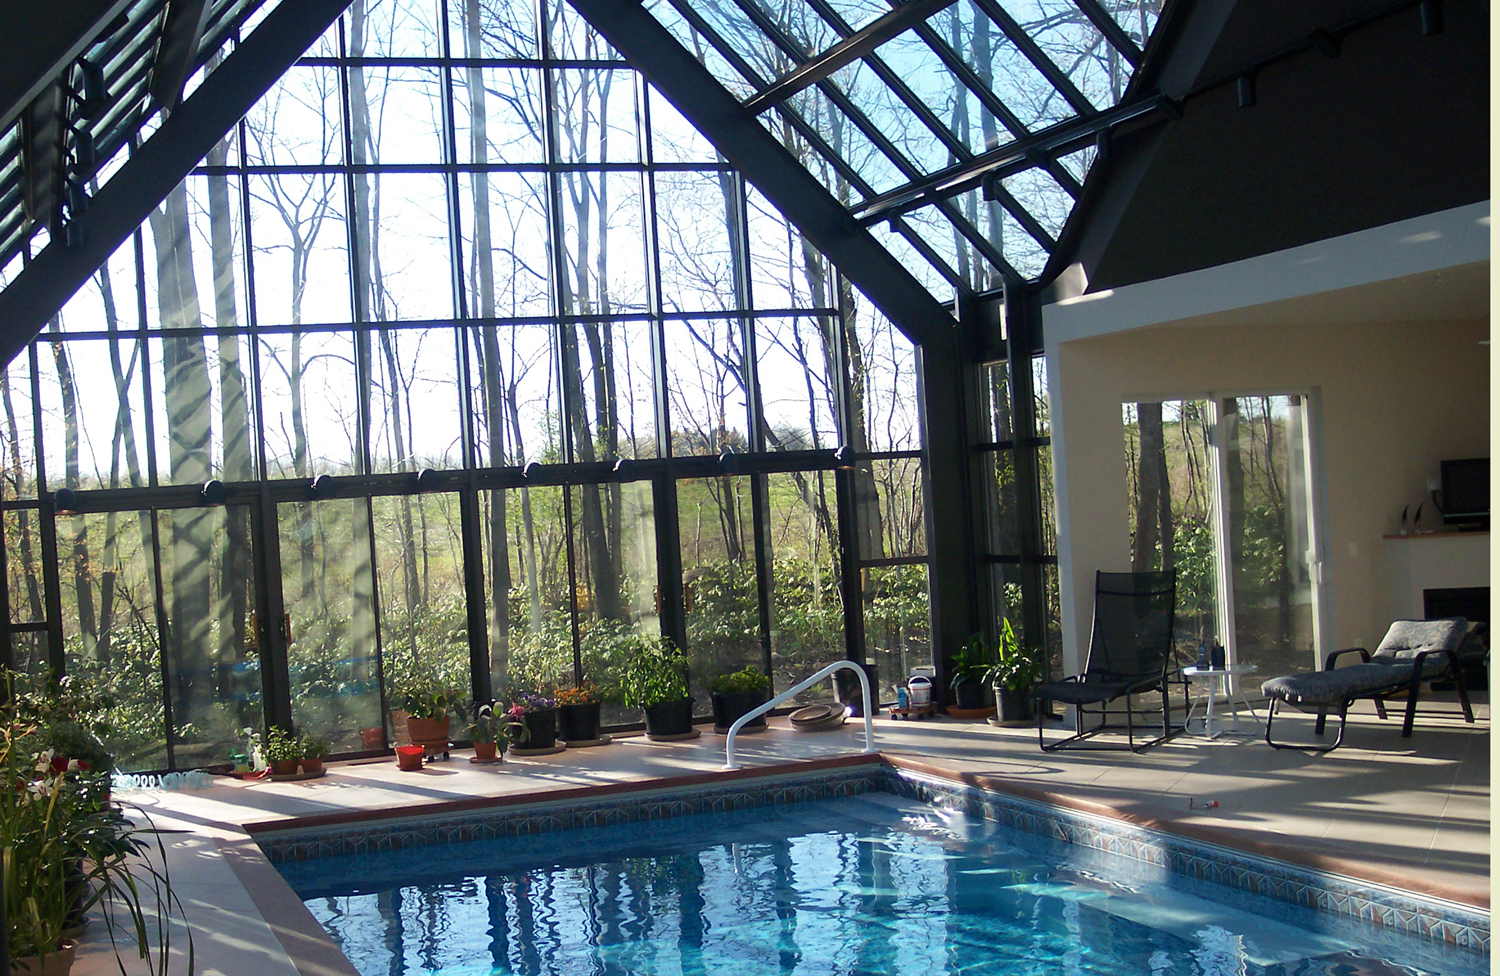 Dream rooms on pinterest indoor pools conservatory and for Pool inside greenhouse